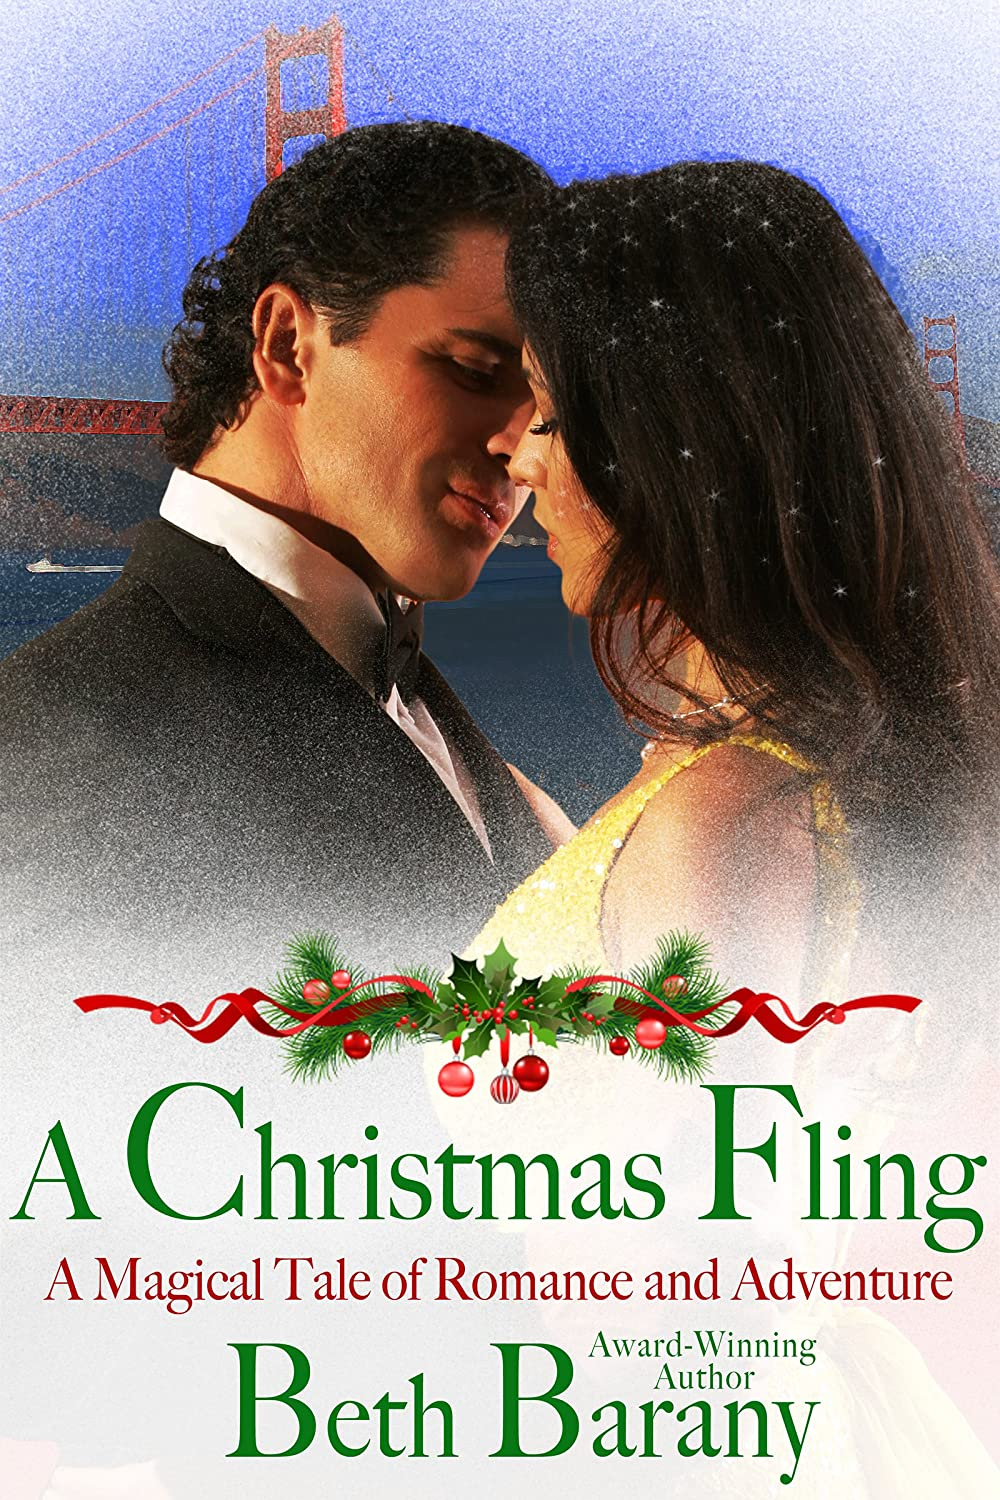 Book Review of -- A Christmas Fling by Beth Barany